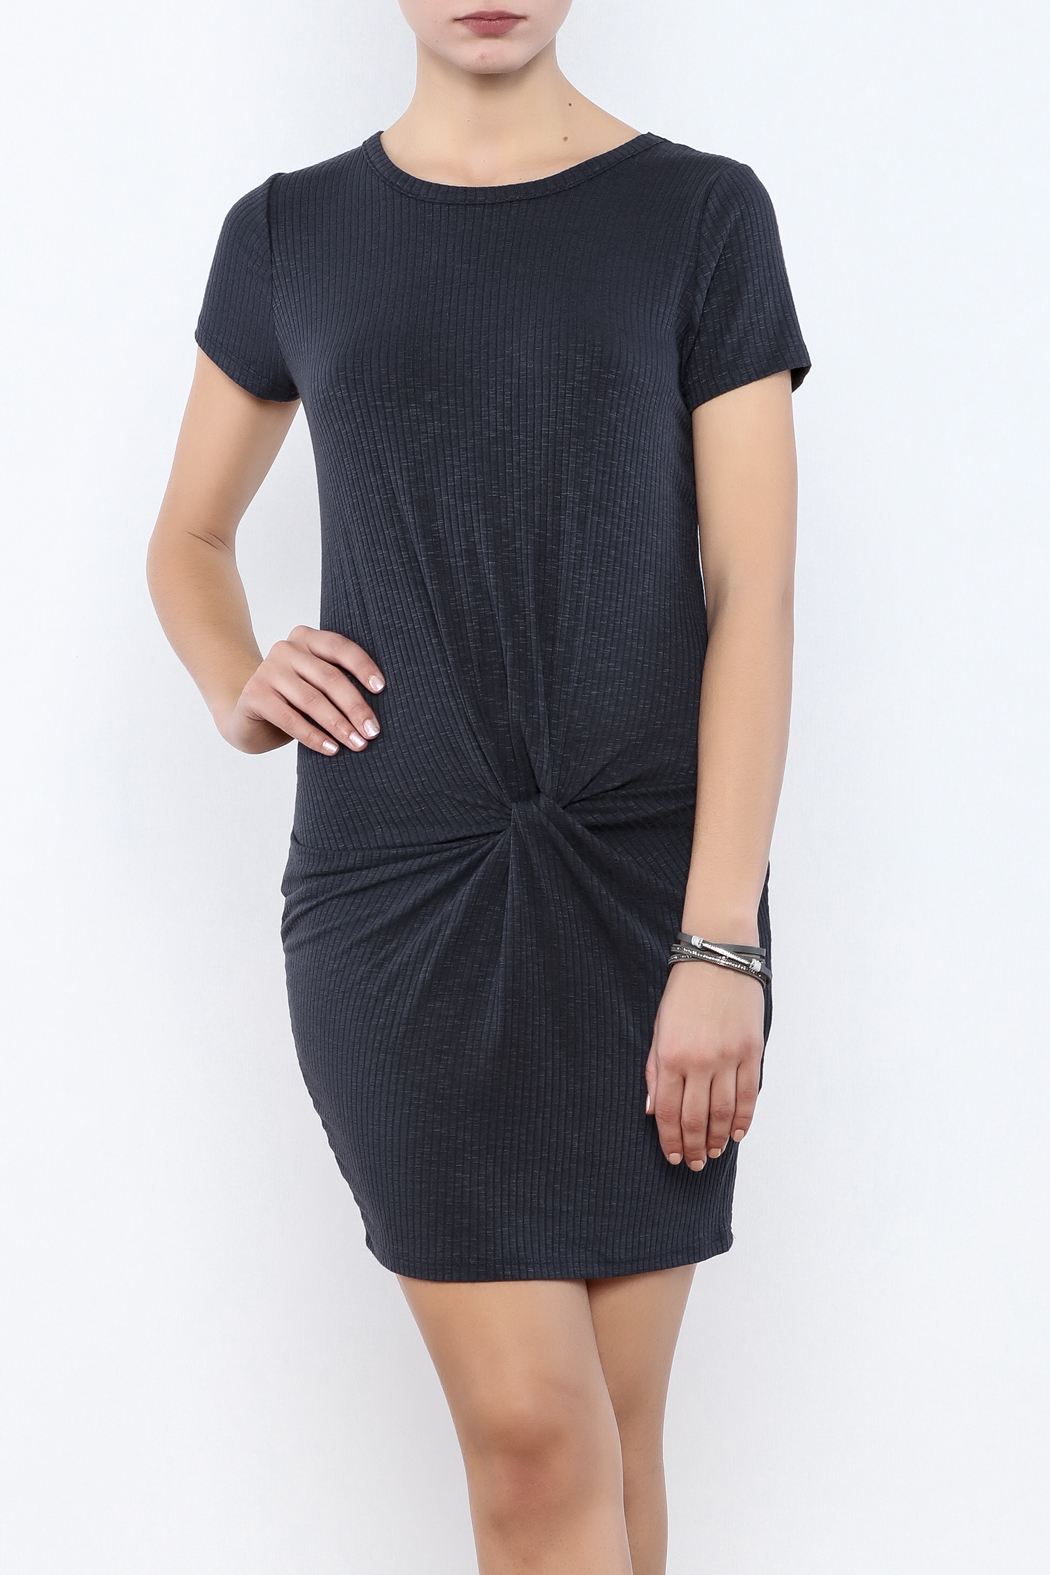 Coveted Clothing Ribbed Knotted Dress - Front Cropped Image